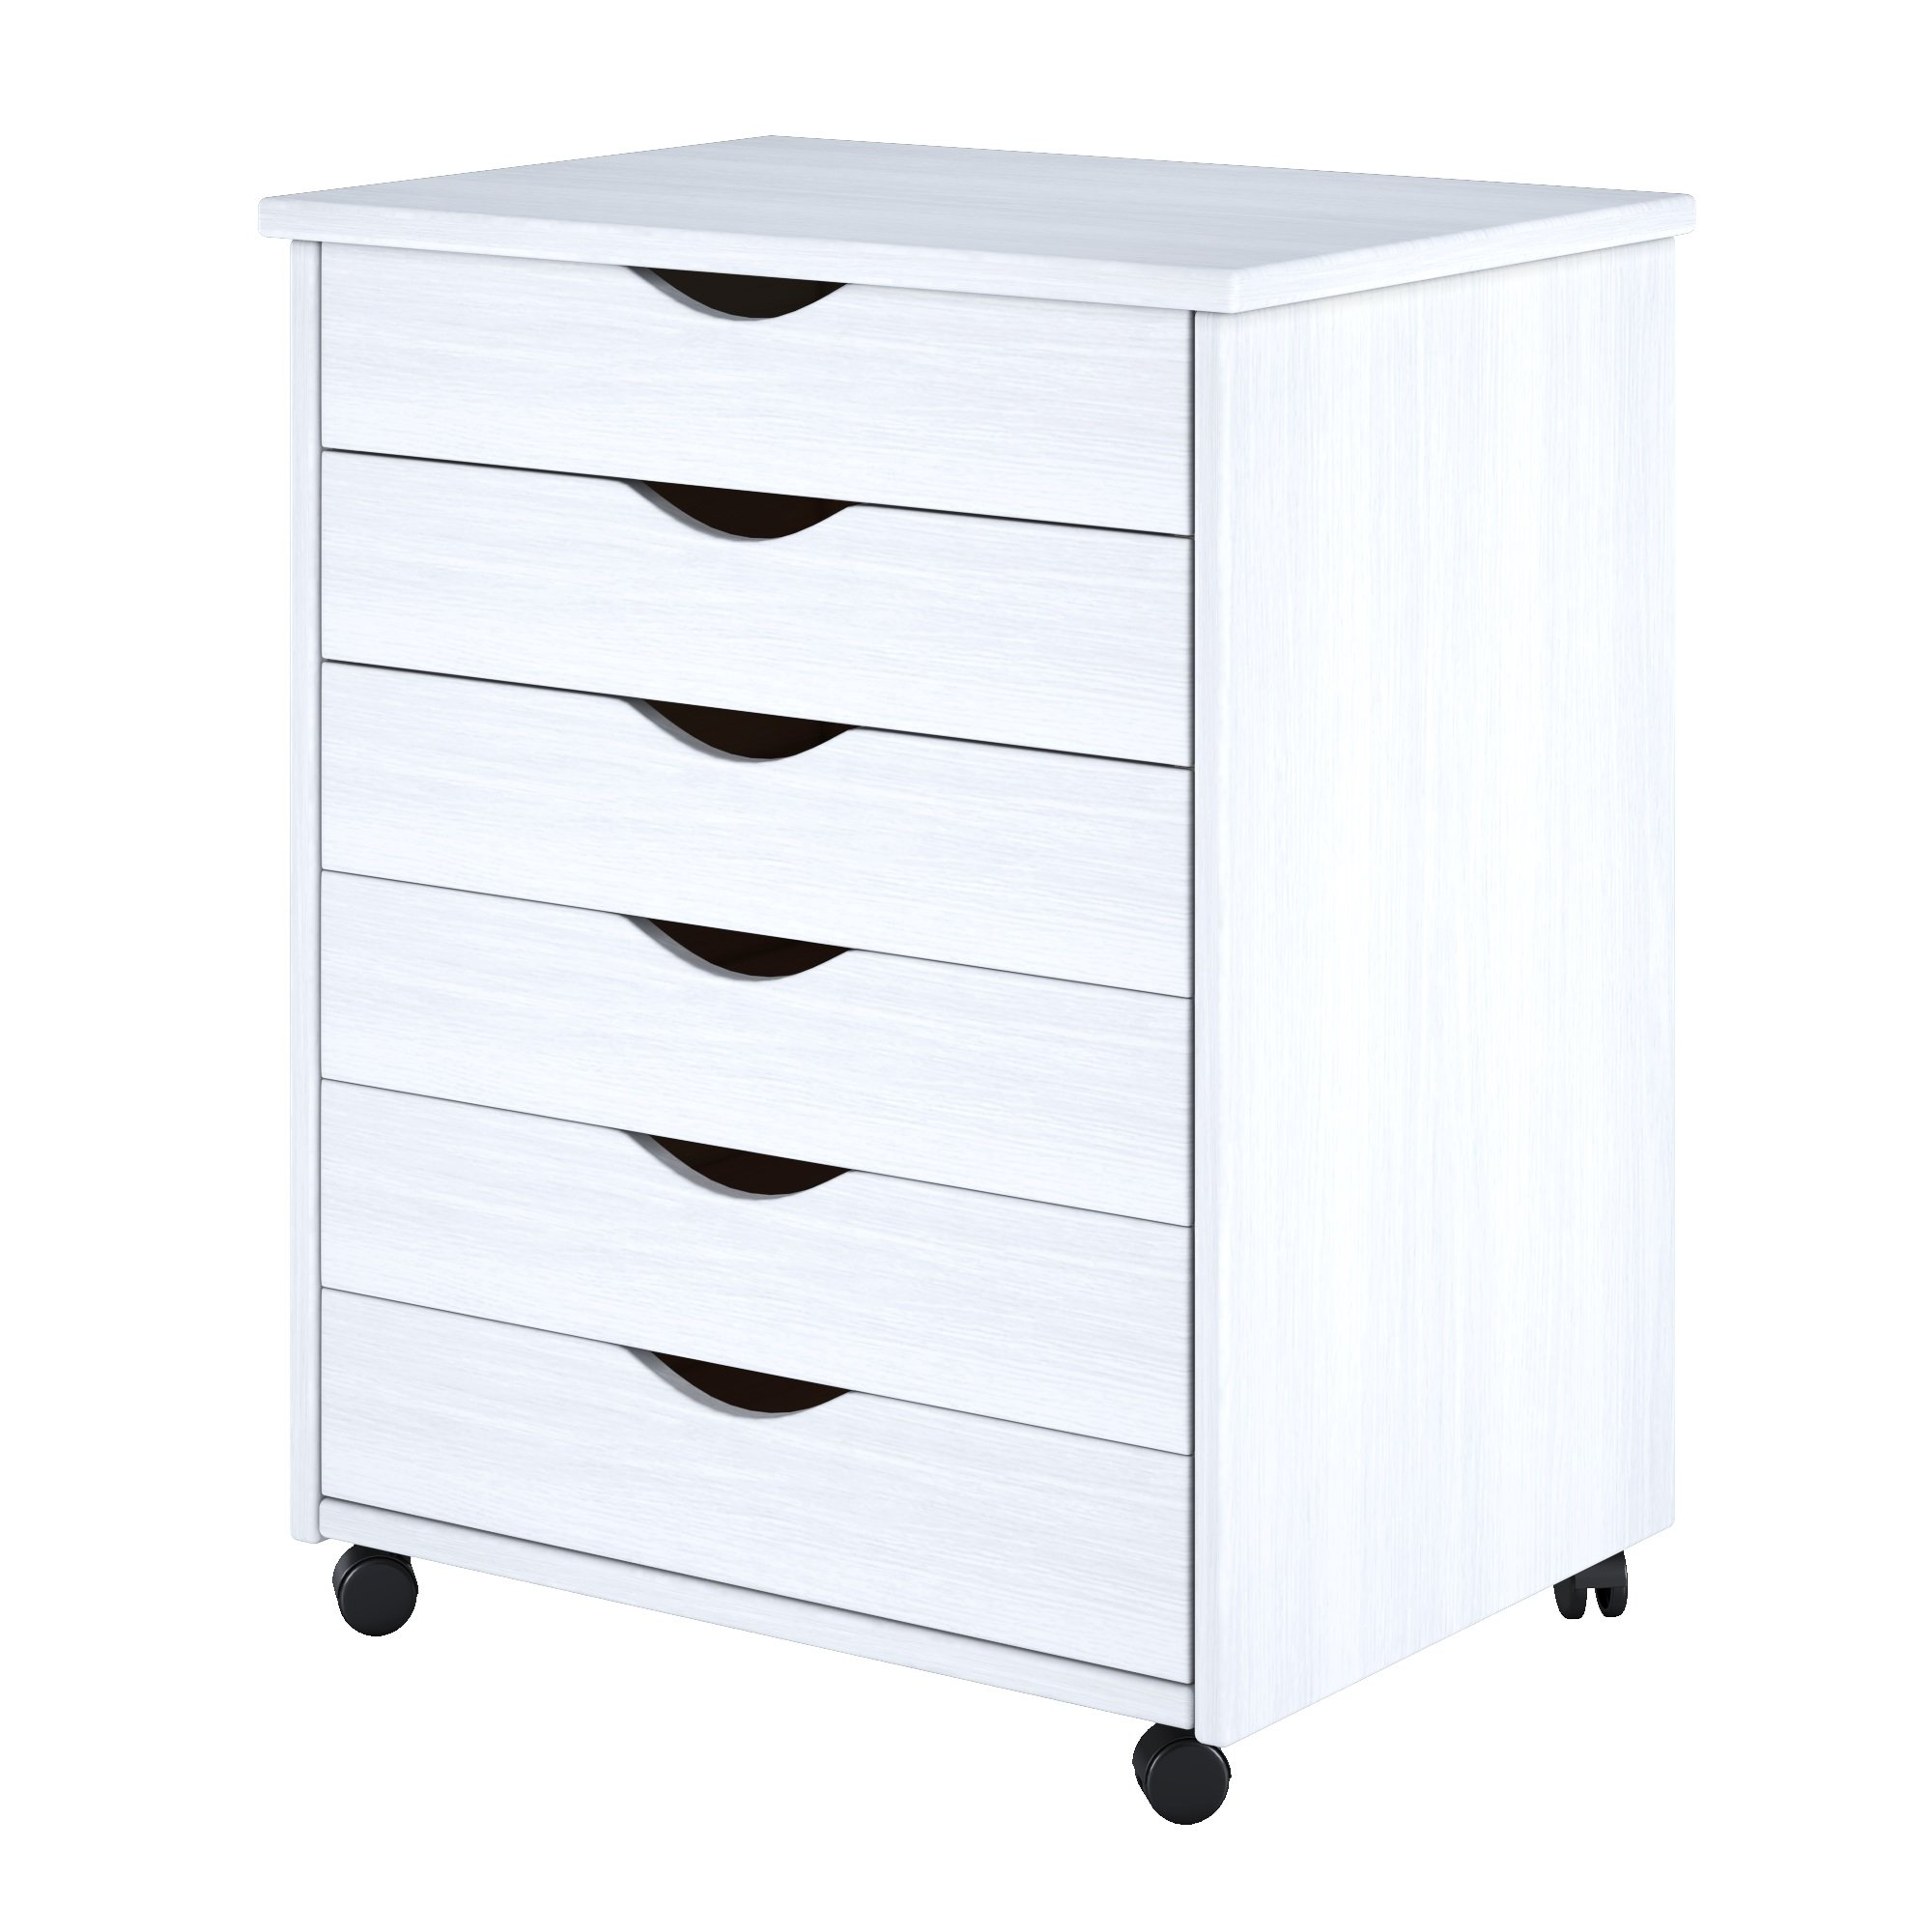 ADEPTUS 88009  6 Drawer Wide Roll Cart Solid Wood, White by ADEPTUS